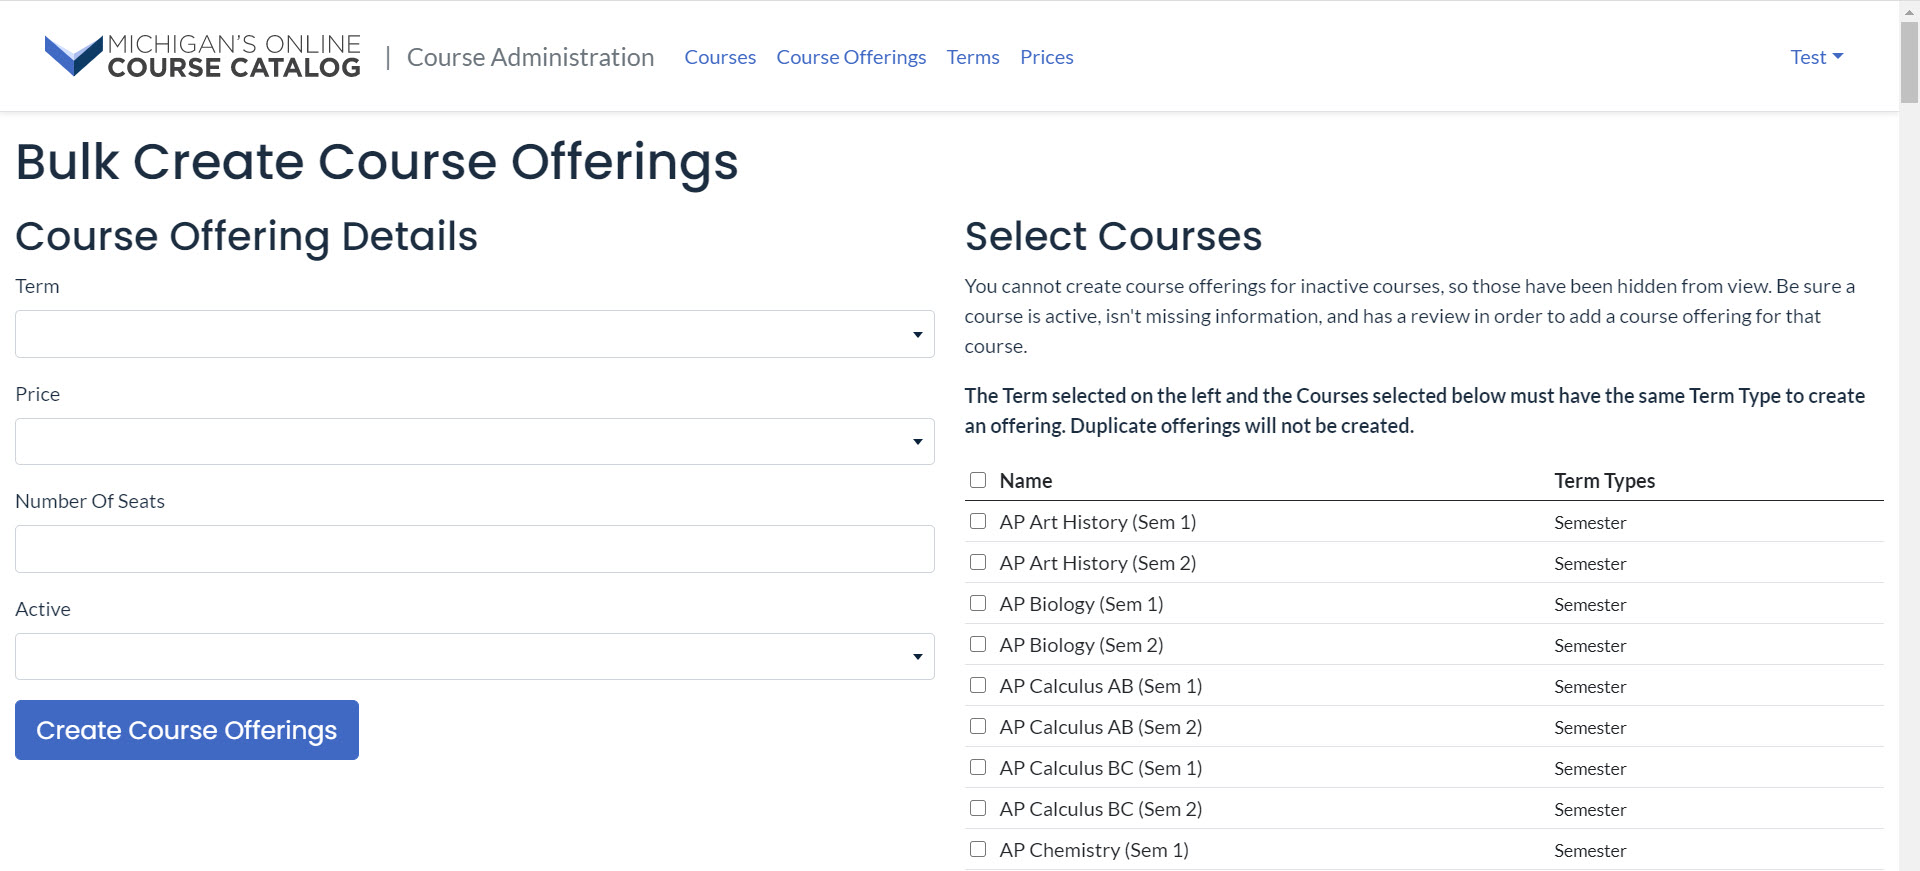 The Bulk Create Course Offerings page is shown with Course Offering Details. At the bottom left the Create Course offerings button is shown.